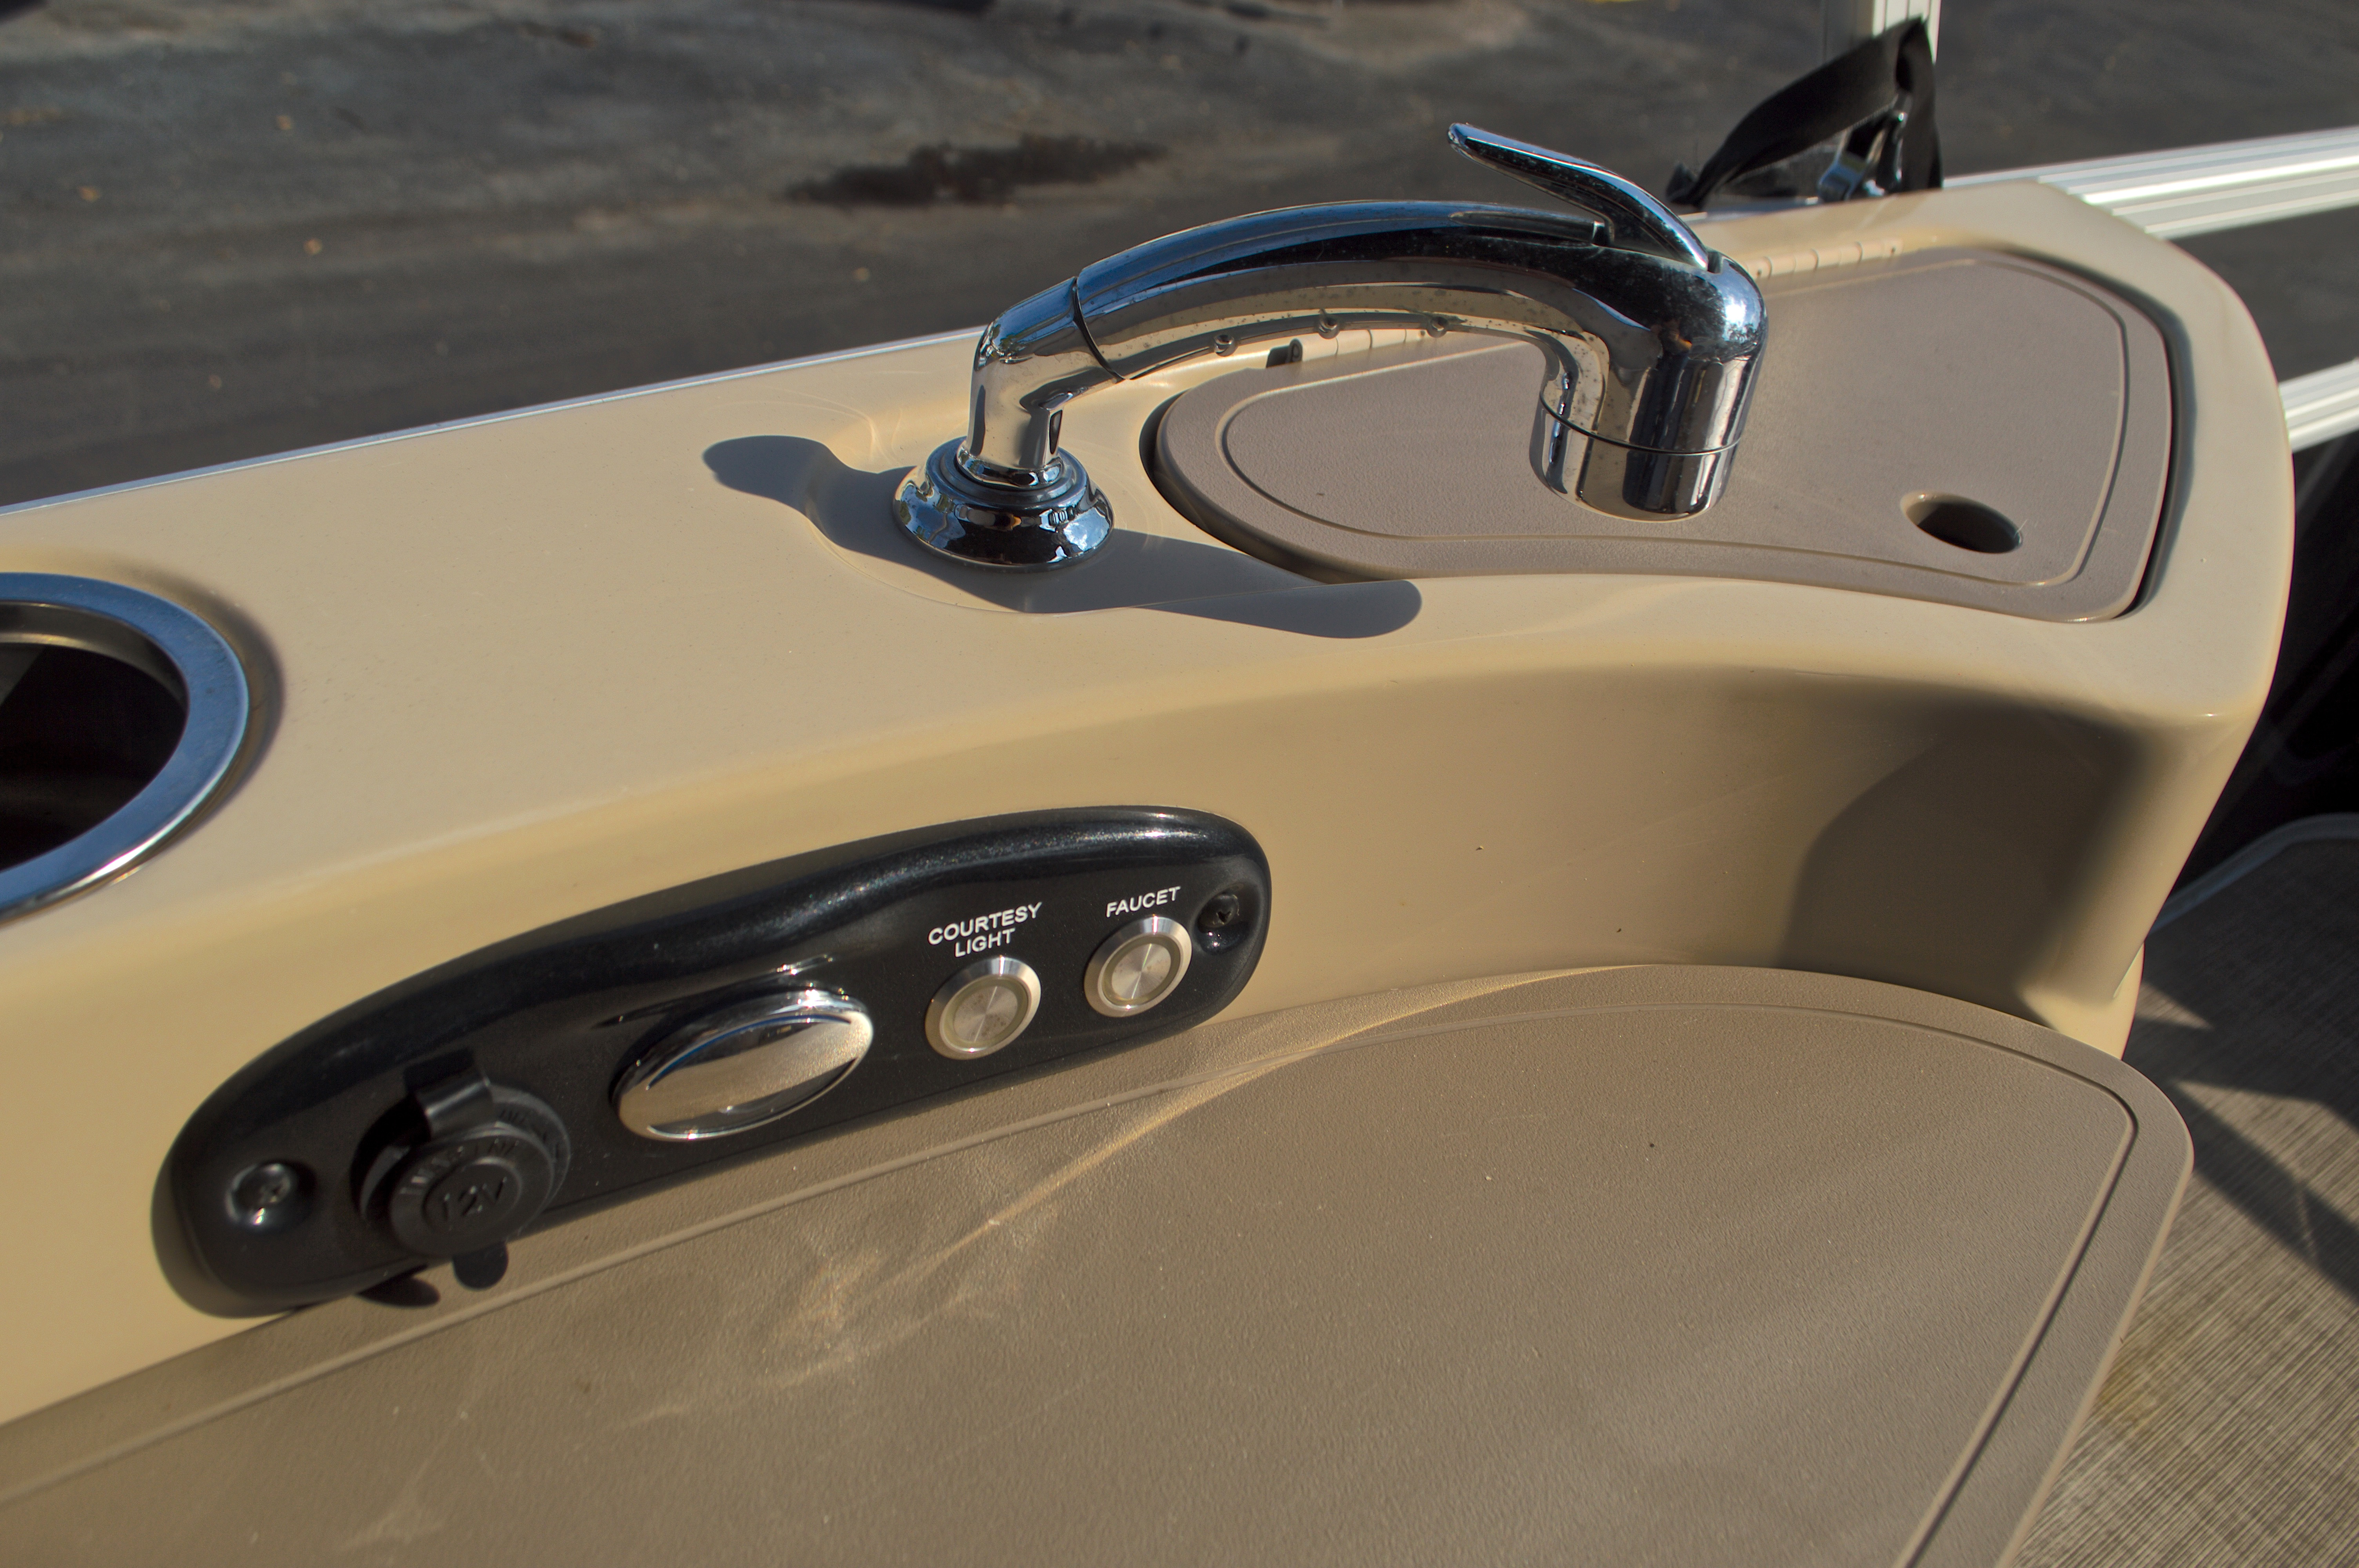 Thumbnail 22 for Used 2014 Regency Party Barge 254 XP3 boat for sale in West Palm Beach, FL